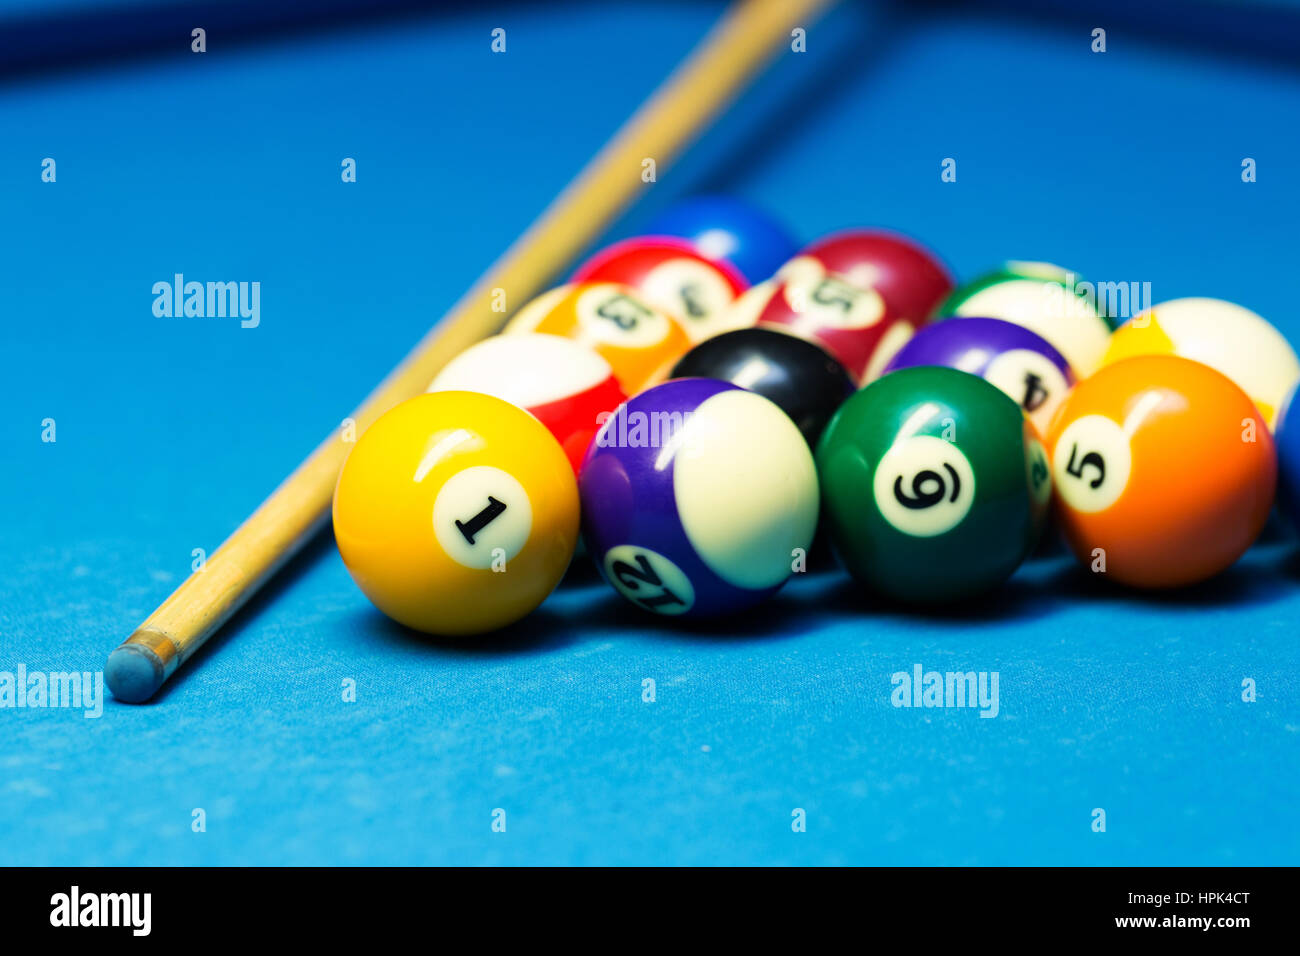 pool billiard balls and cue on the blue cloth table - Stock Image